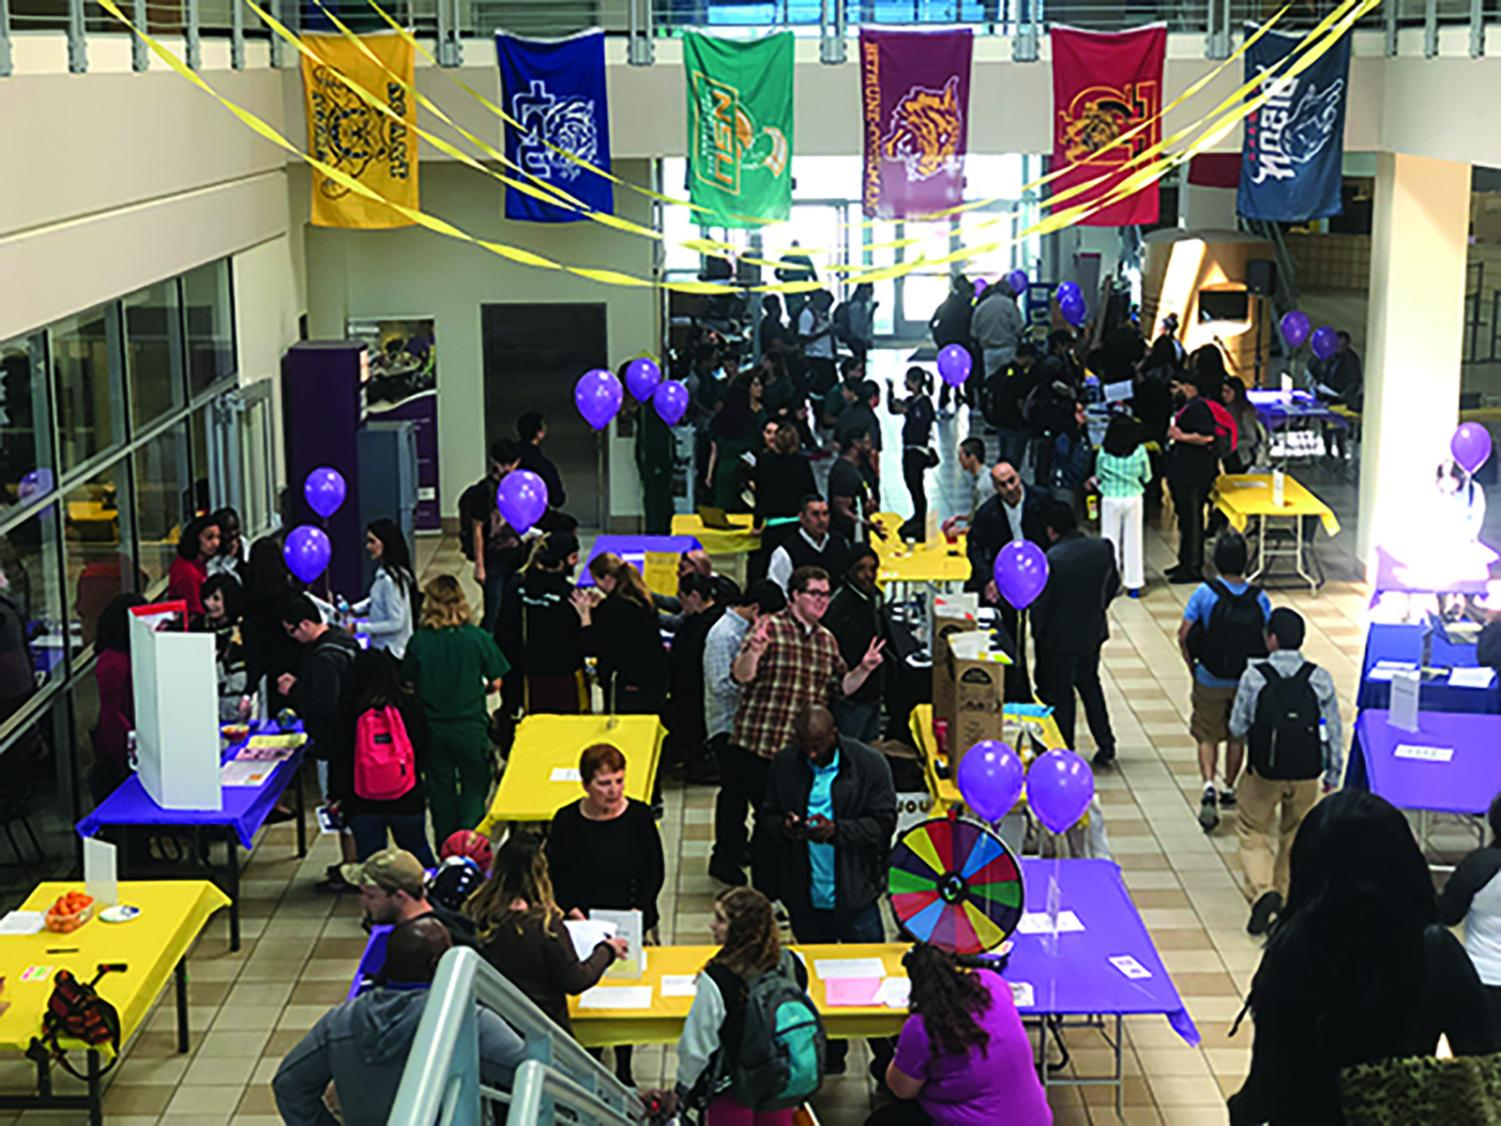 Students gather in the Student Center to get information about the different departments and programs offered at SJCC during the major fair on Wednesday, April 25, 2018.